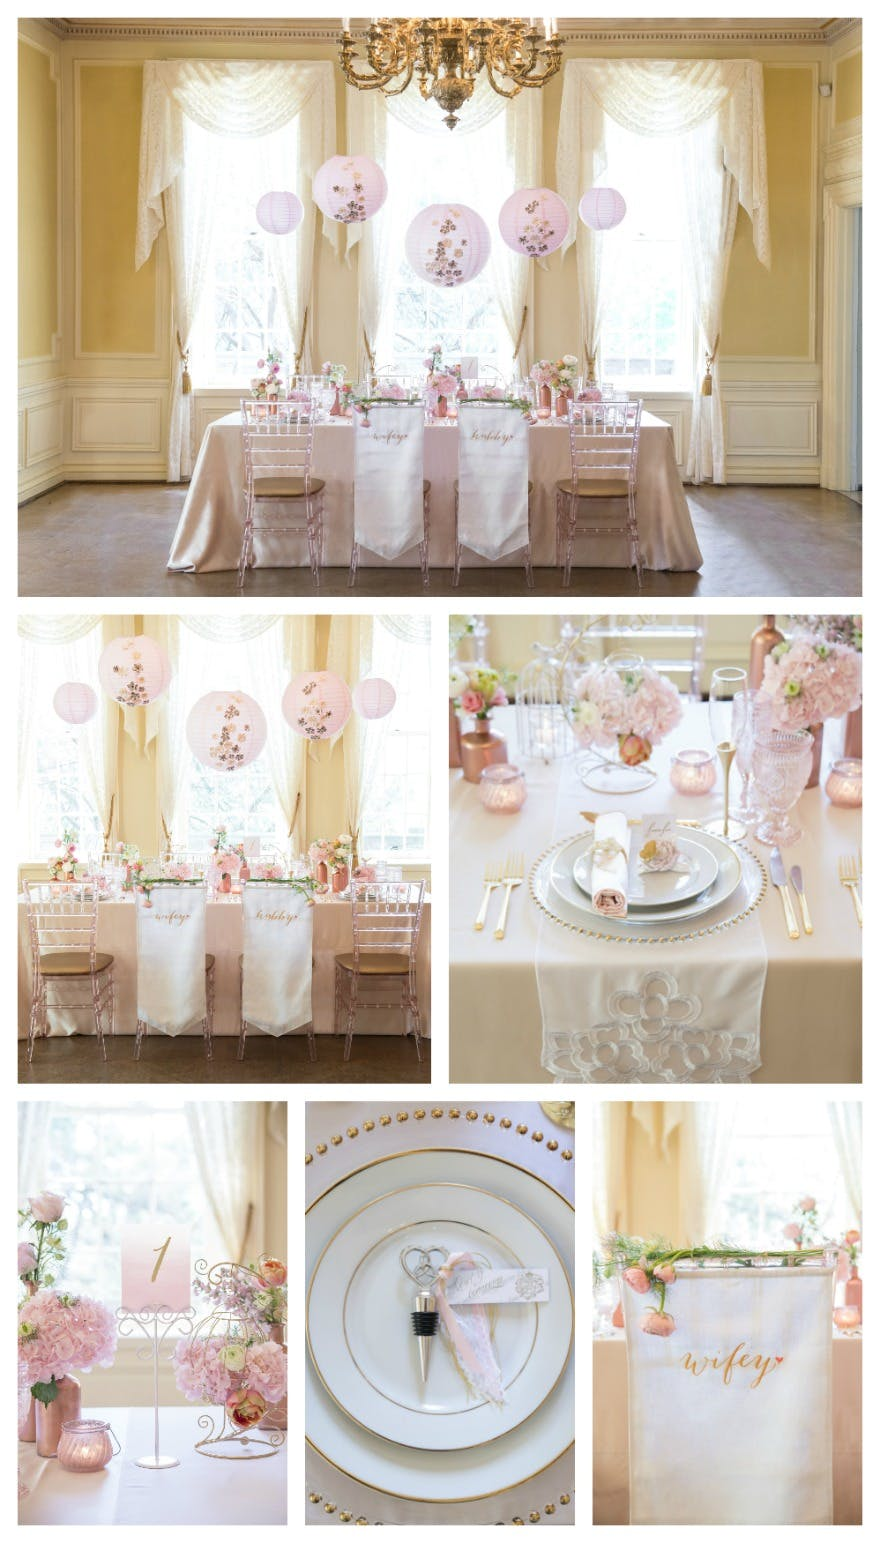 Classic wedding table decorations and chair decor | Confetti.co.uk